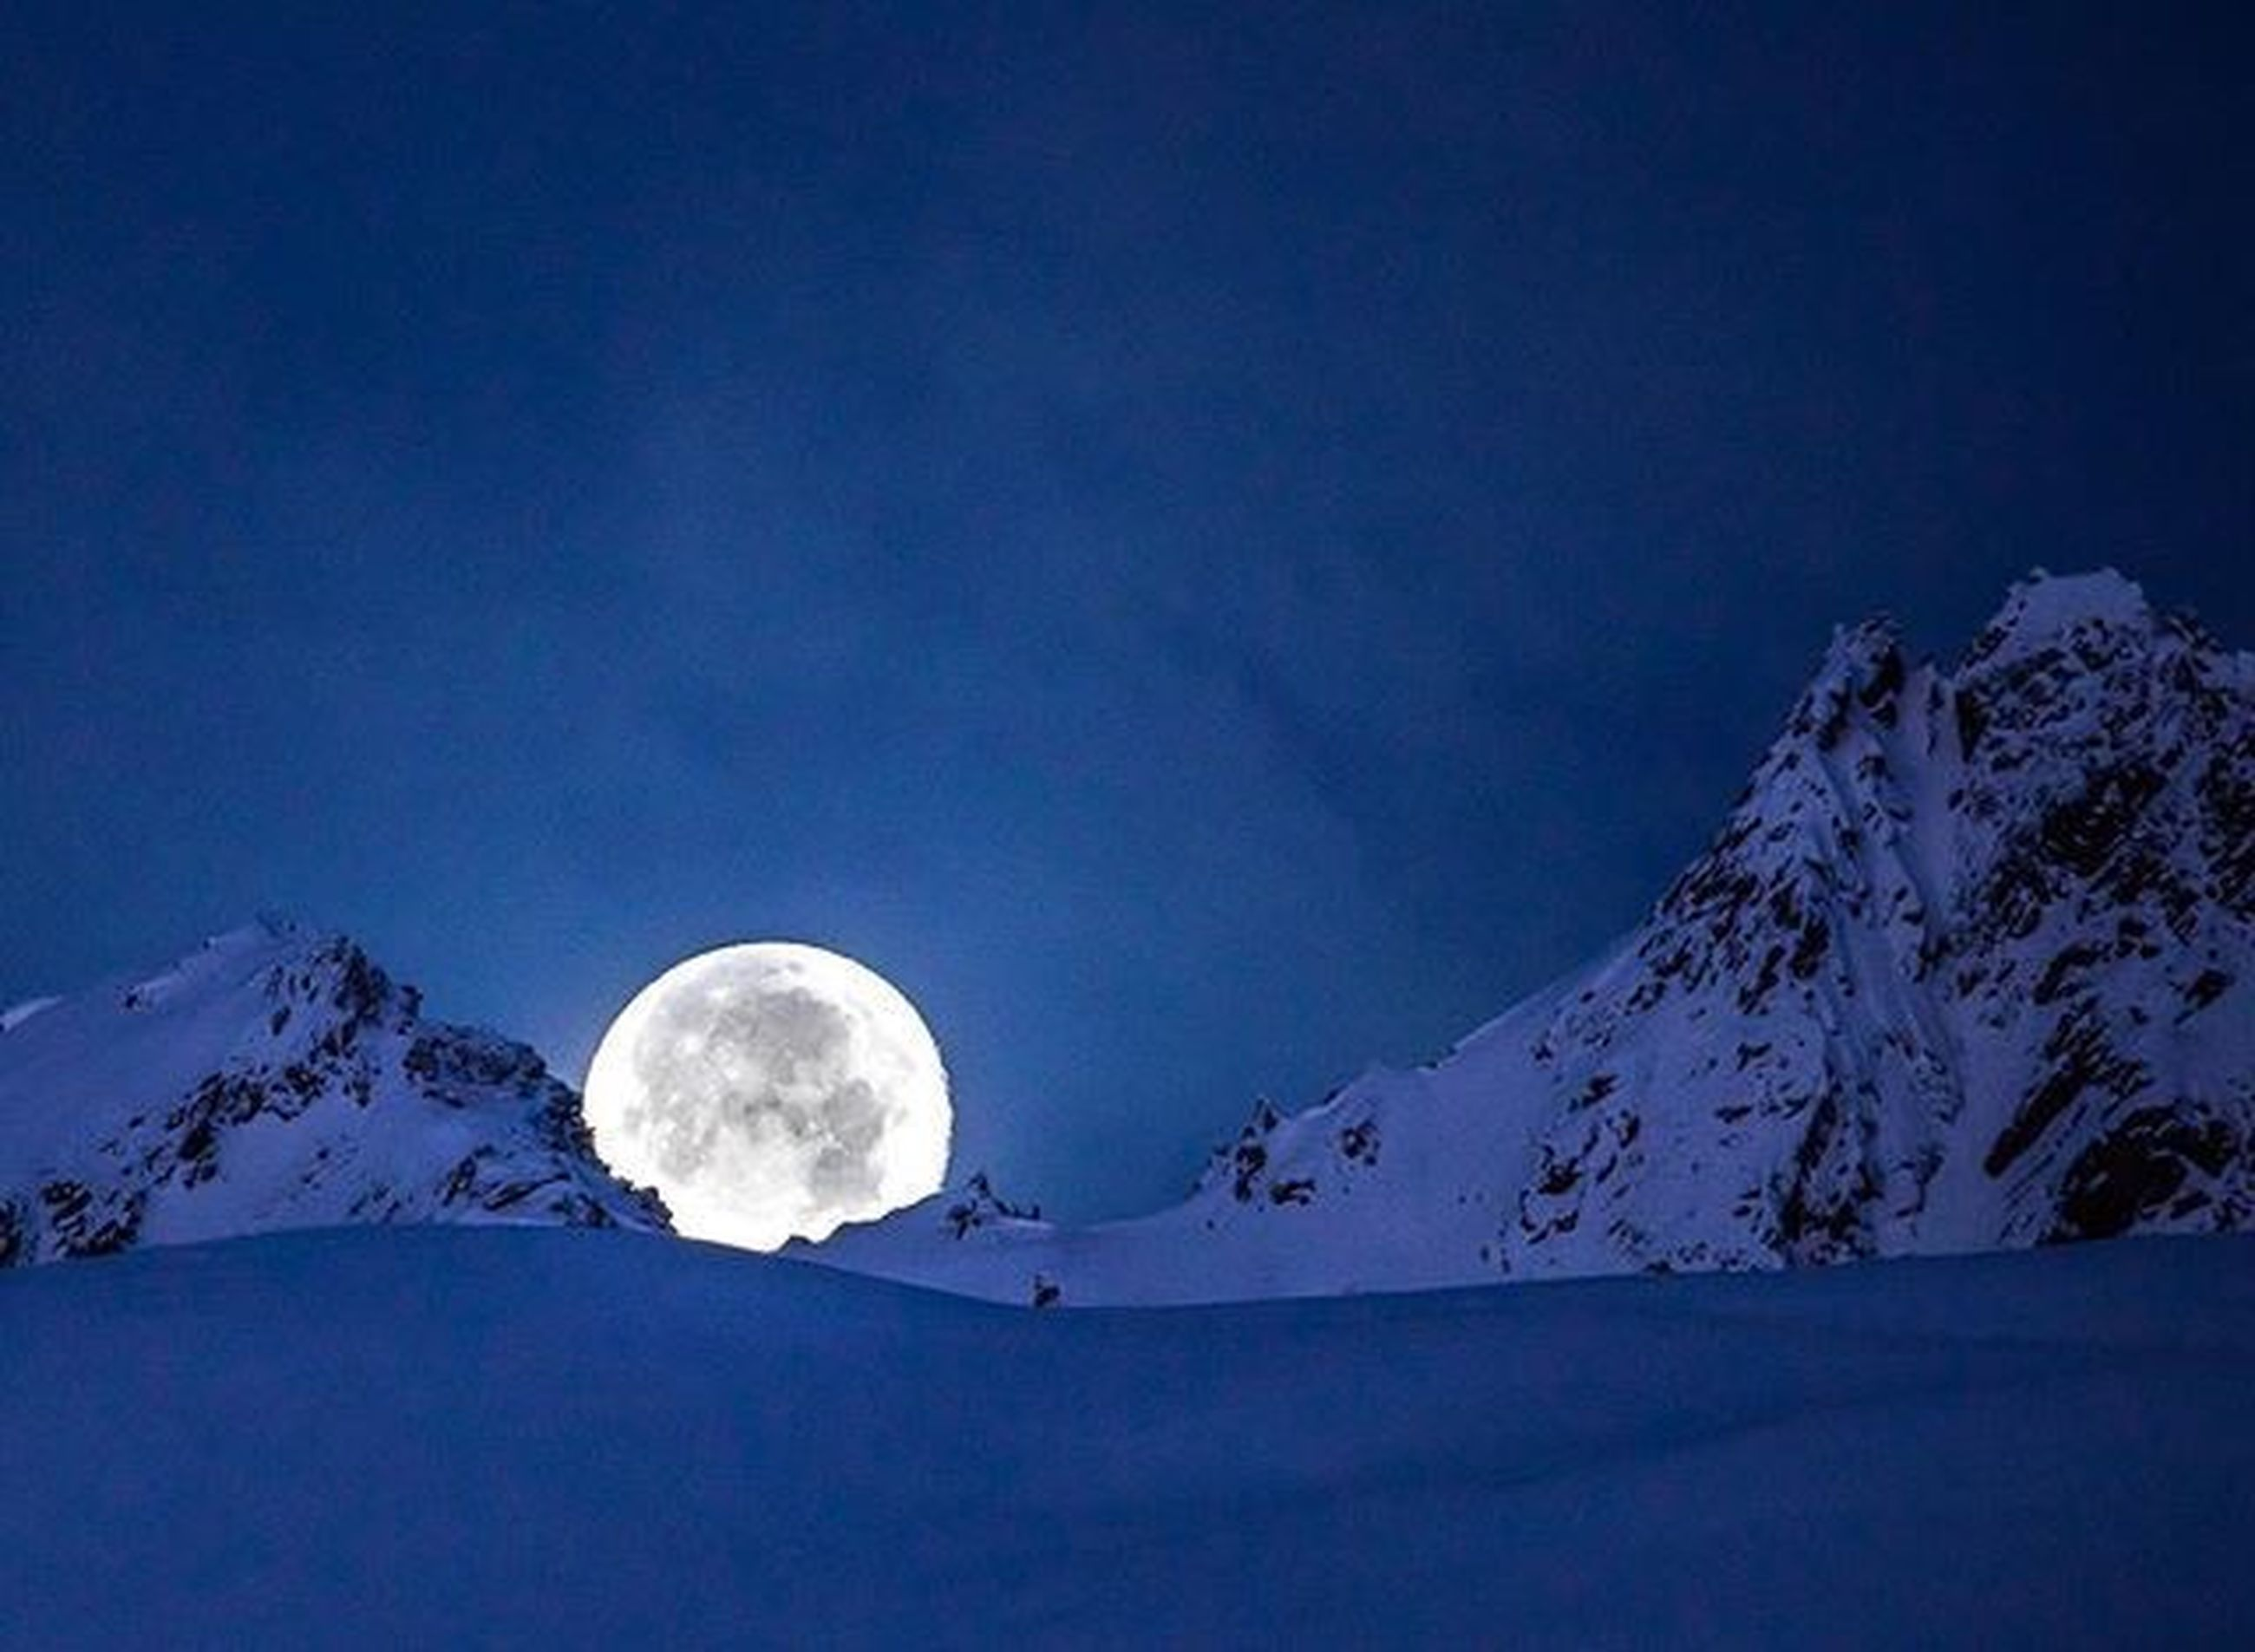 moon, full moon, sky, night, snow, mountain, scenics - nature, cold temperature, beauty in nature, winter, nature, tranquility, tranquil scene, no people, astronomy, snowcapped mountain, cloud - sky, space, idyllic, moonlight, outdoors, planetary moon, mountain peak